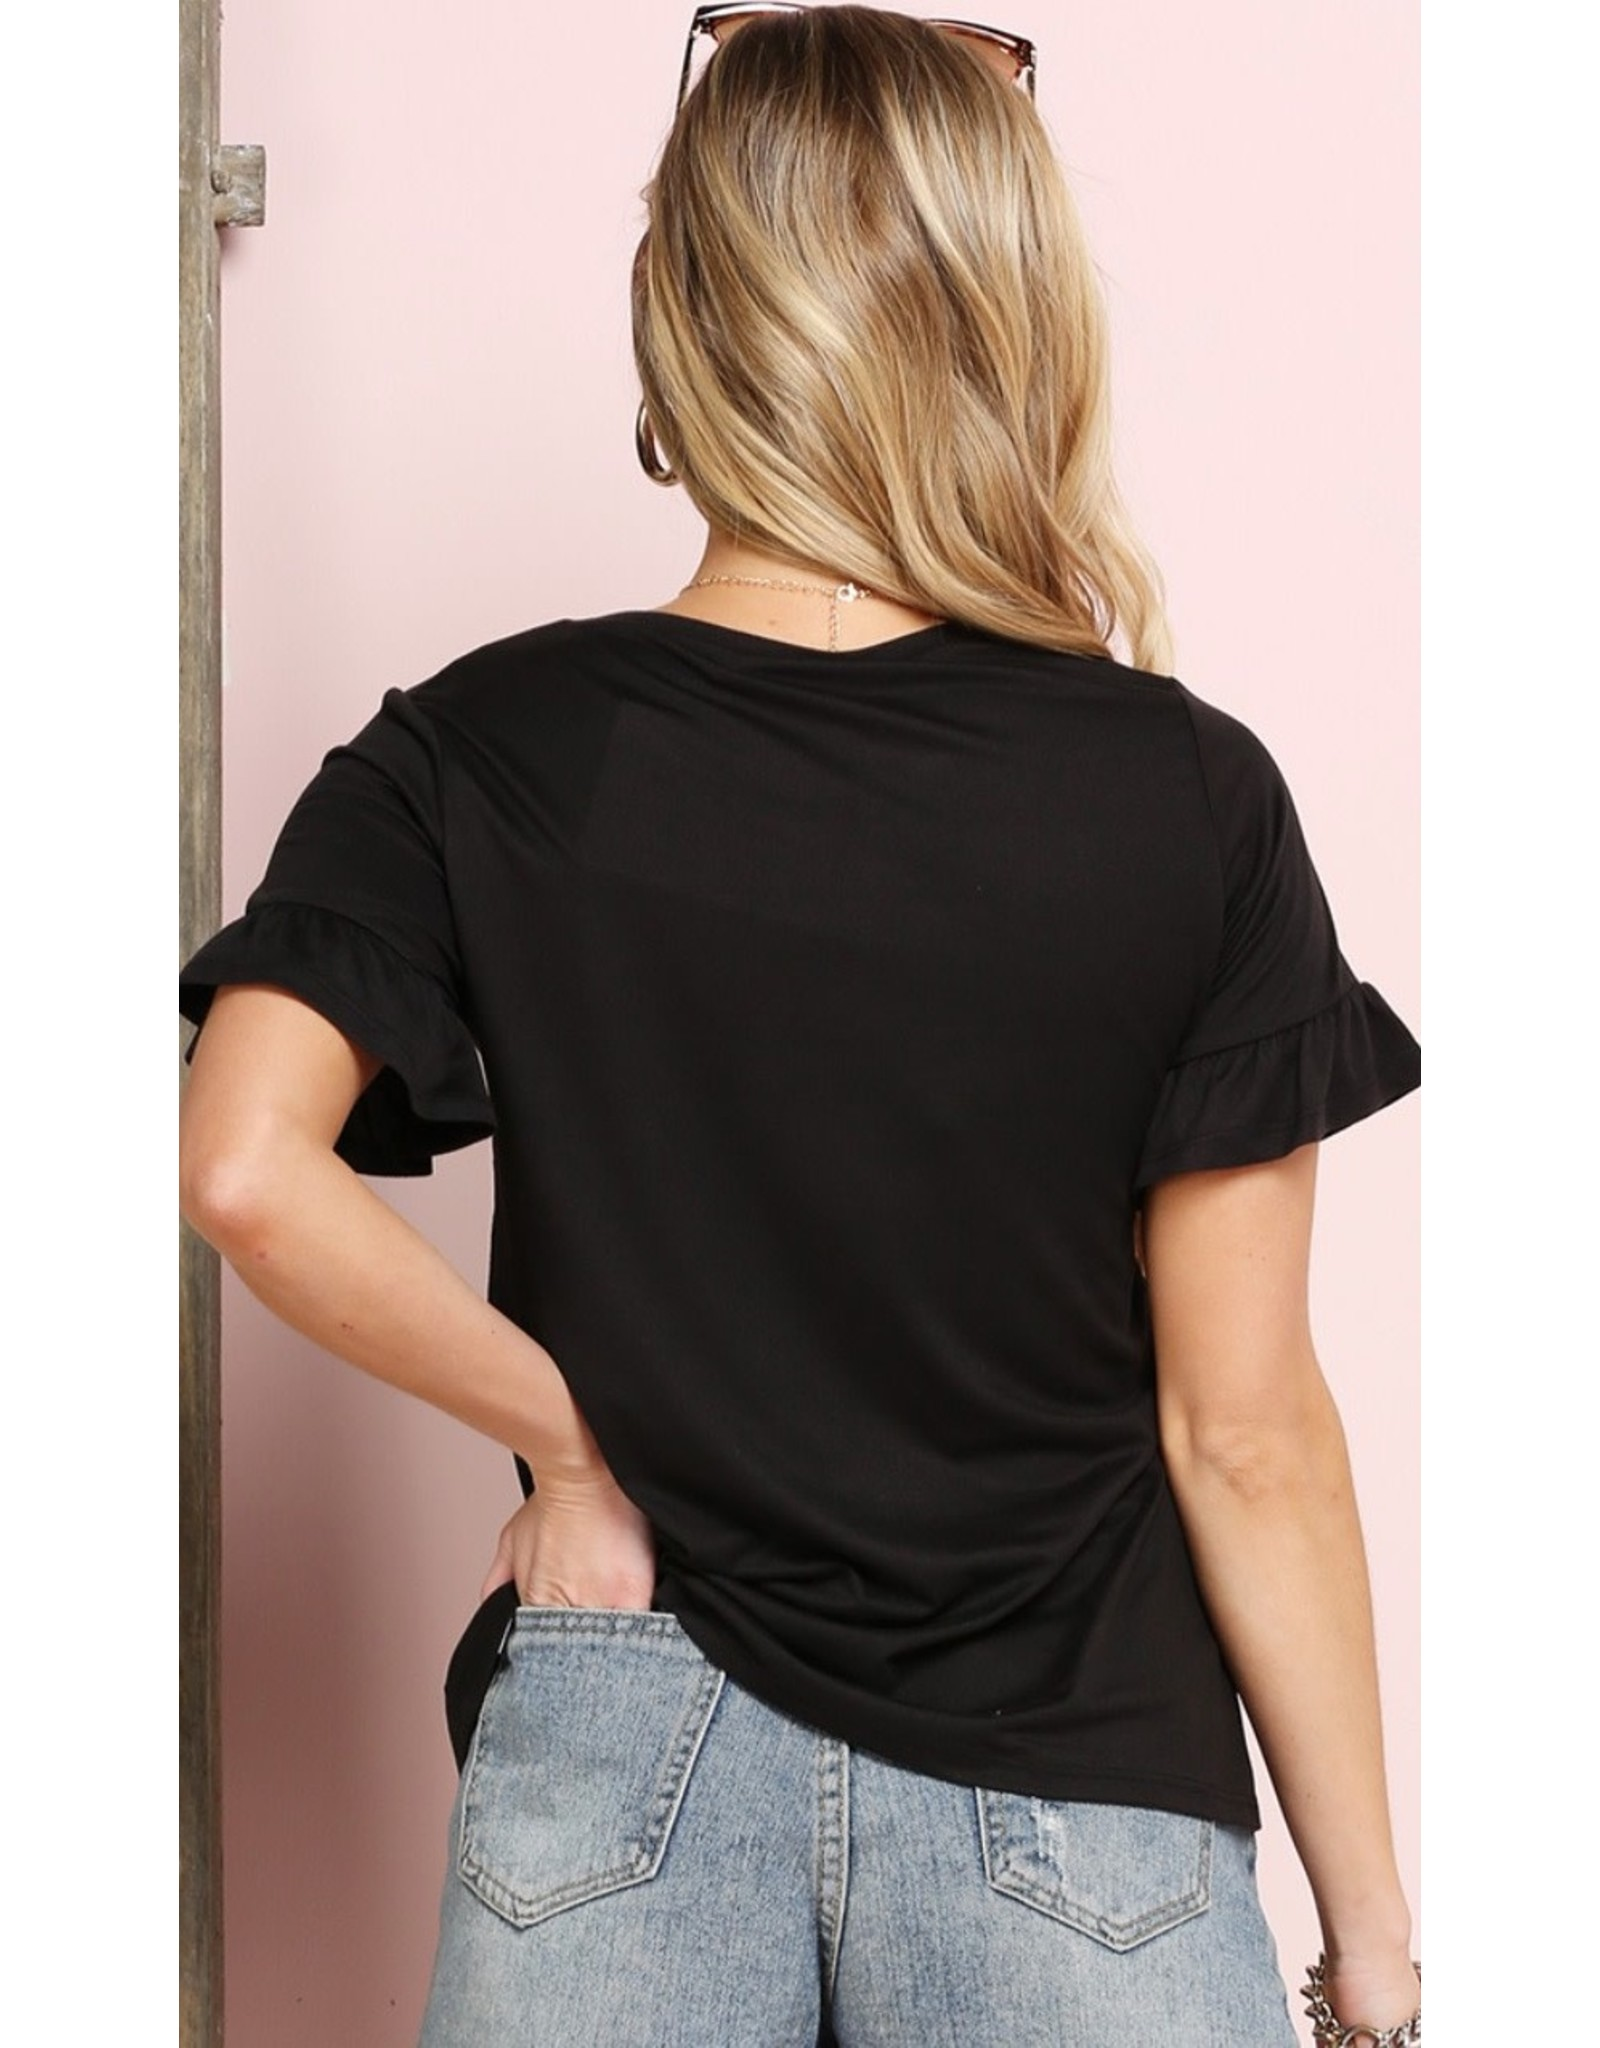 The Ritzy Gypsy JEN Black Ruffle Sleeve Top